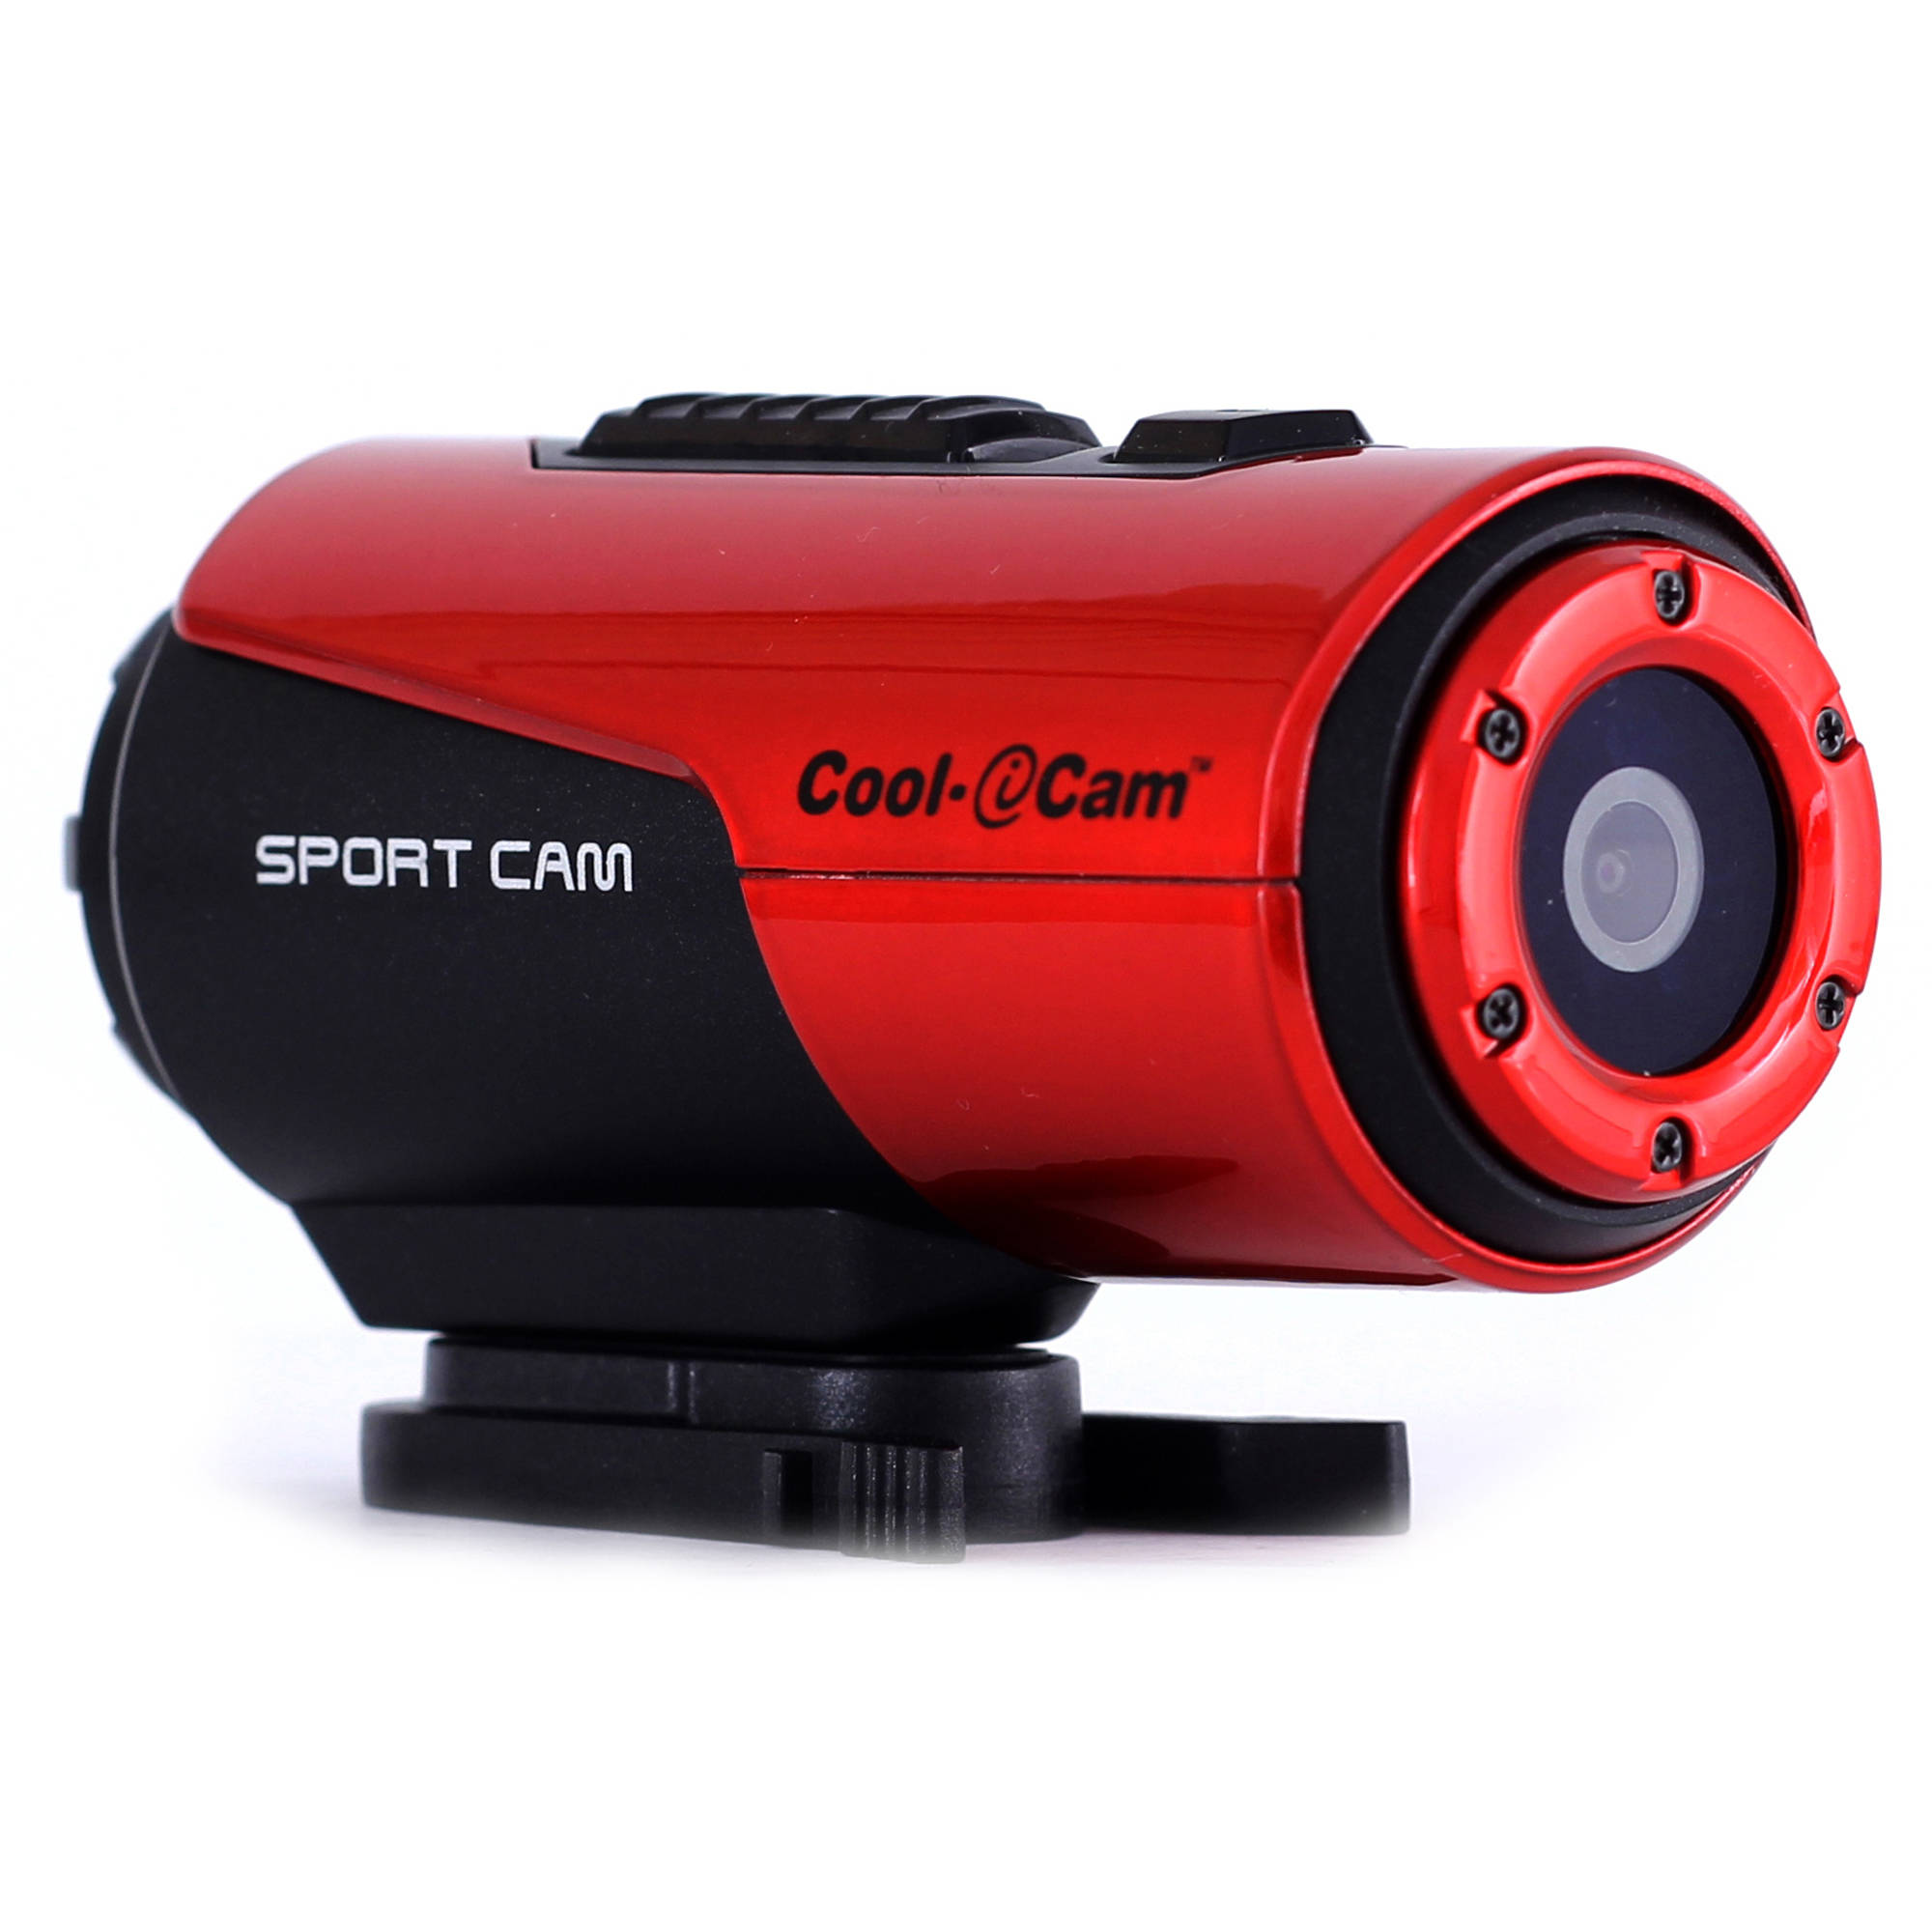 iON America Cool i Cam S3000 Action Camcorder with 720p HD Video, 5 Megapixel Photos and Waterproofing